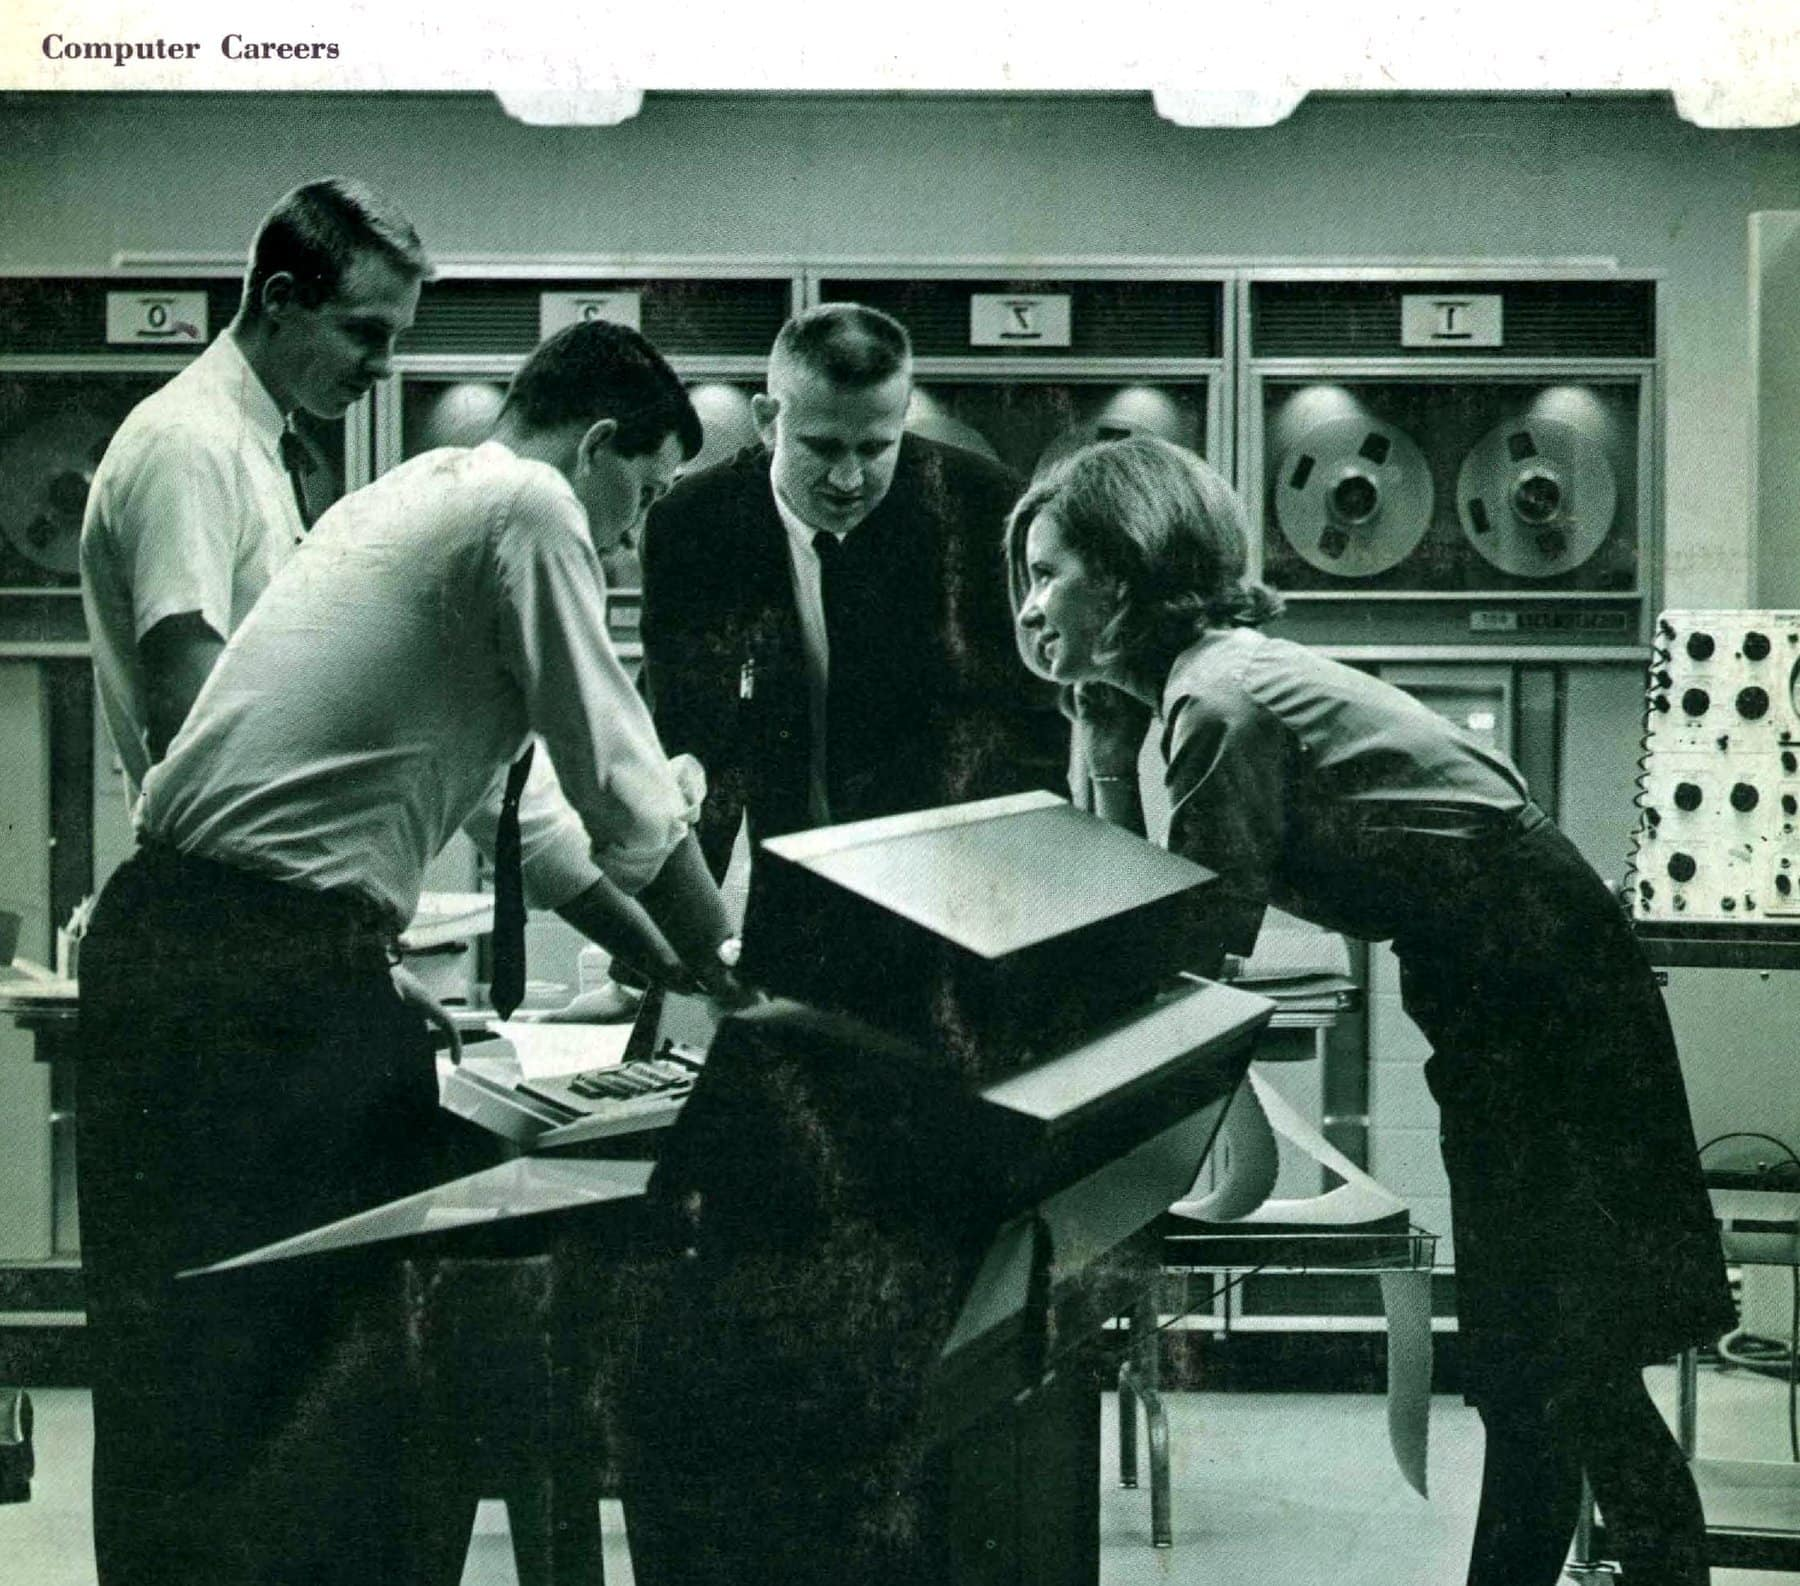 In the 1960s, computer programmers were in high demand